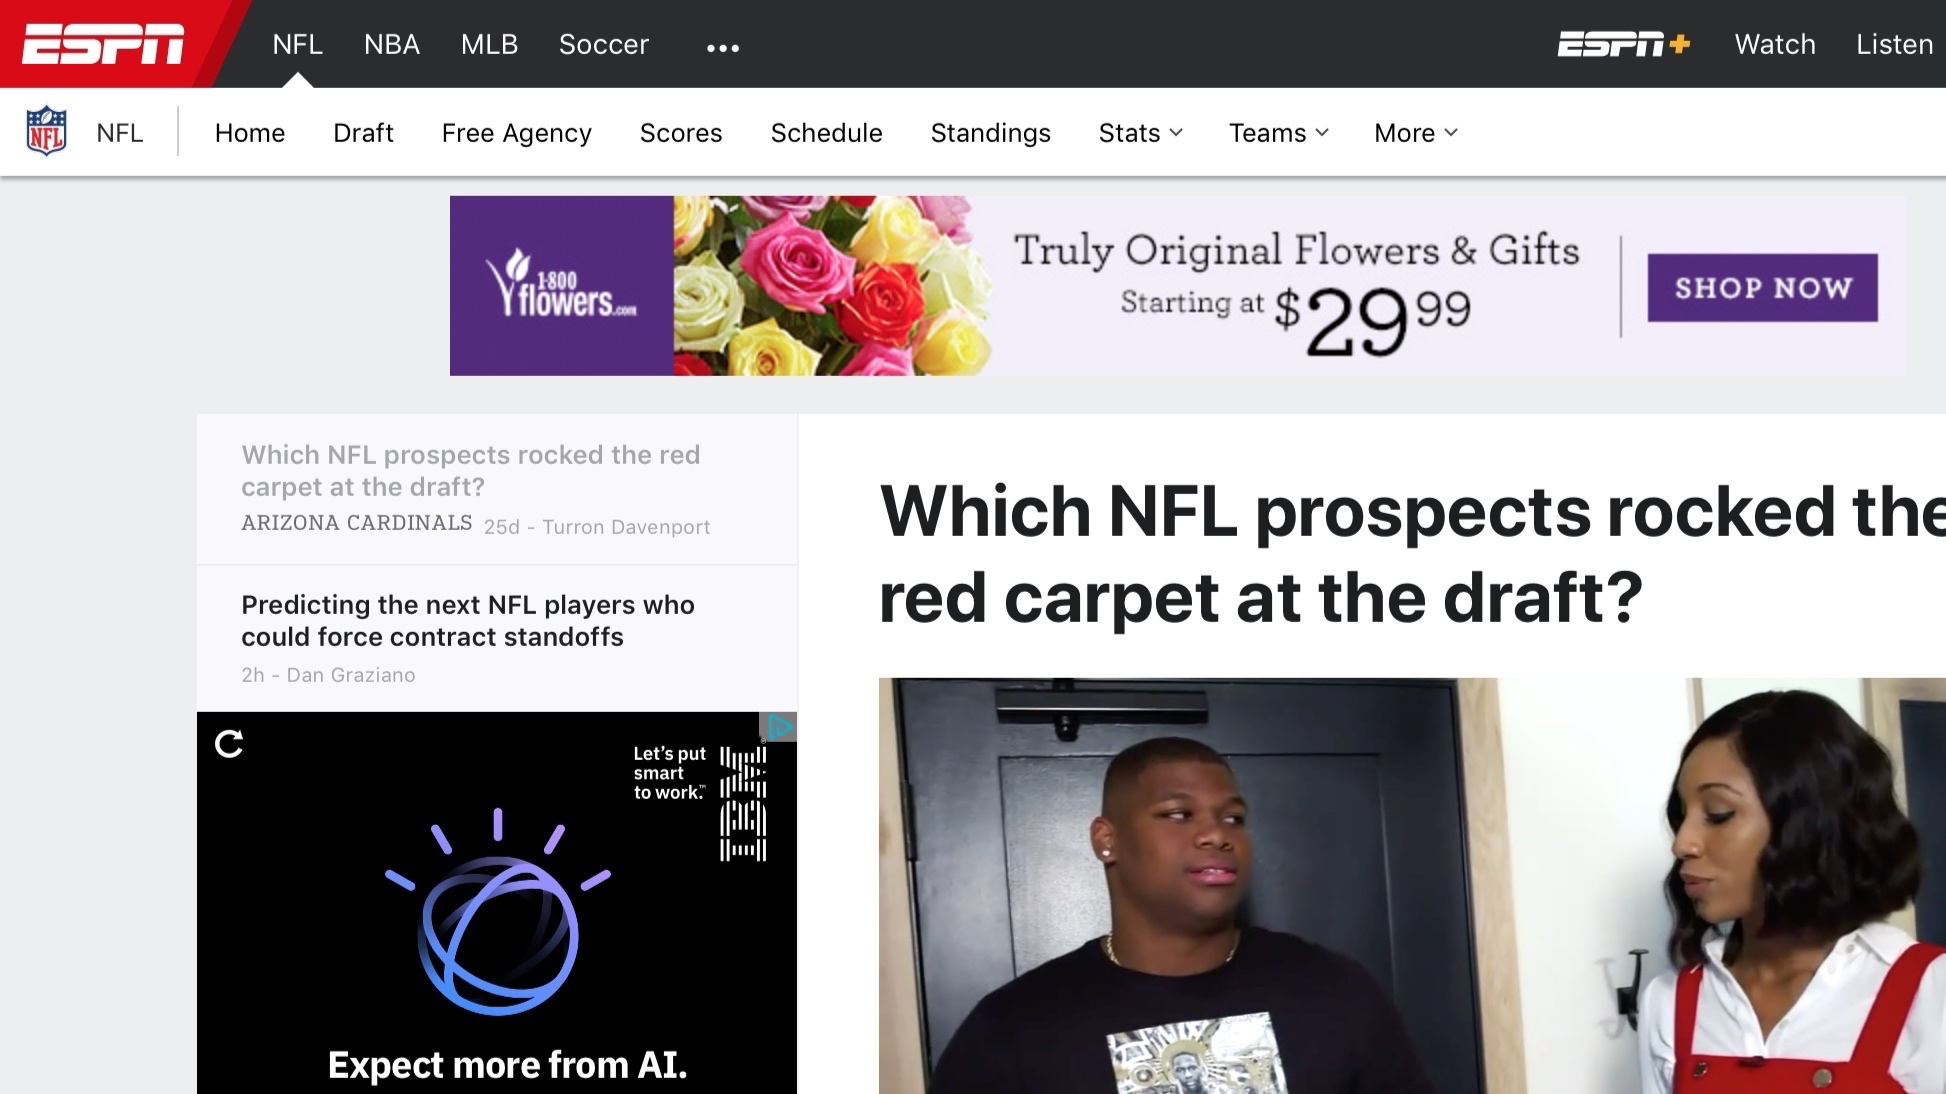 ESPN , April 29, 2019   Which NFL prospects rocked the red carpet at the draft?